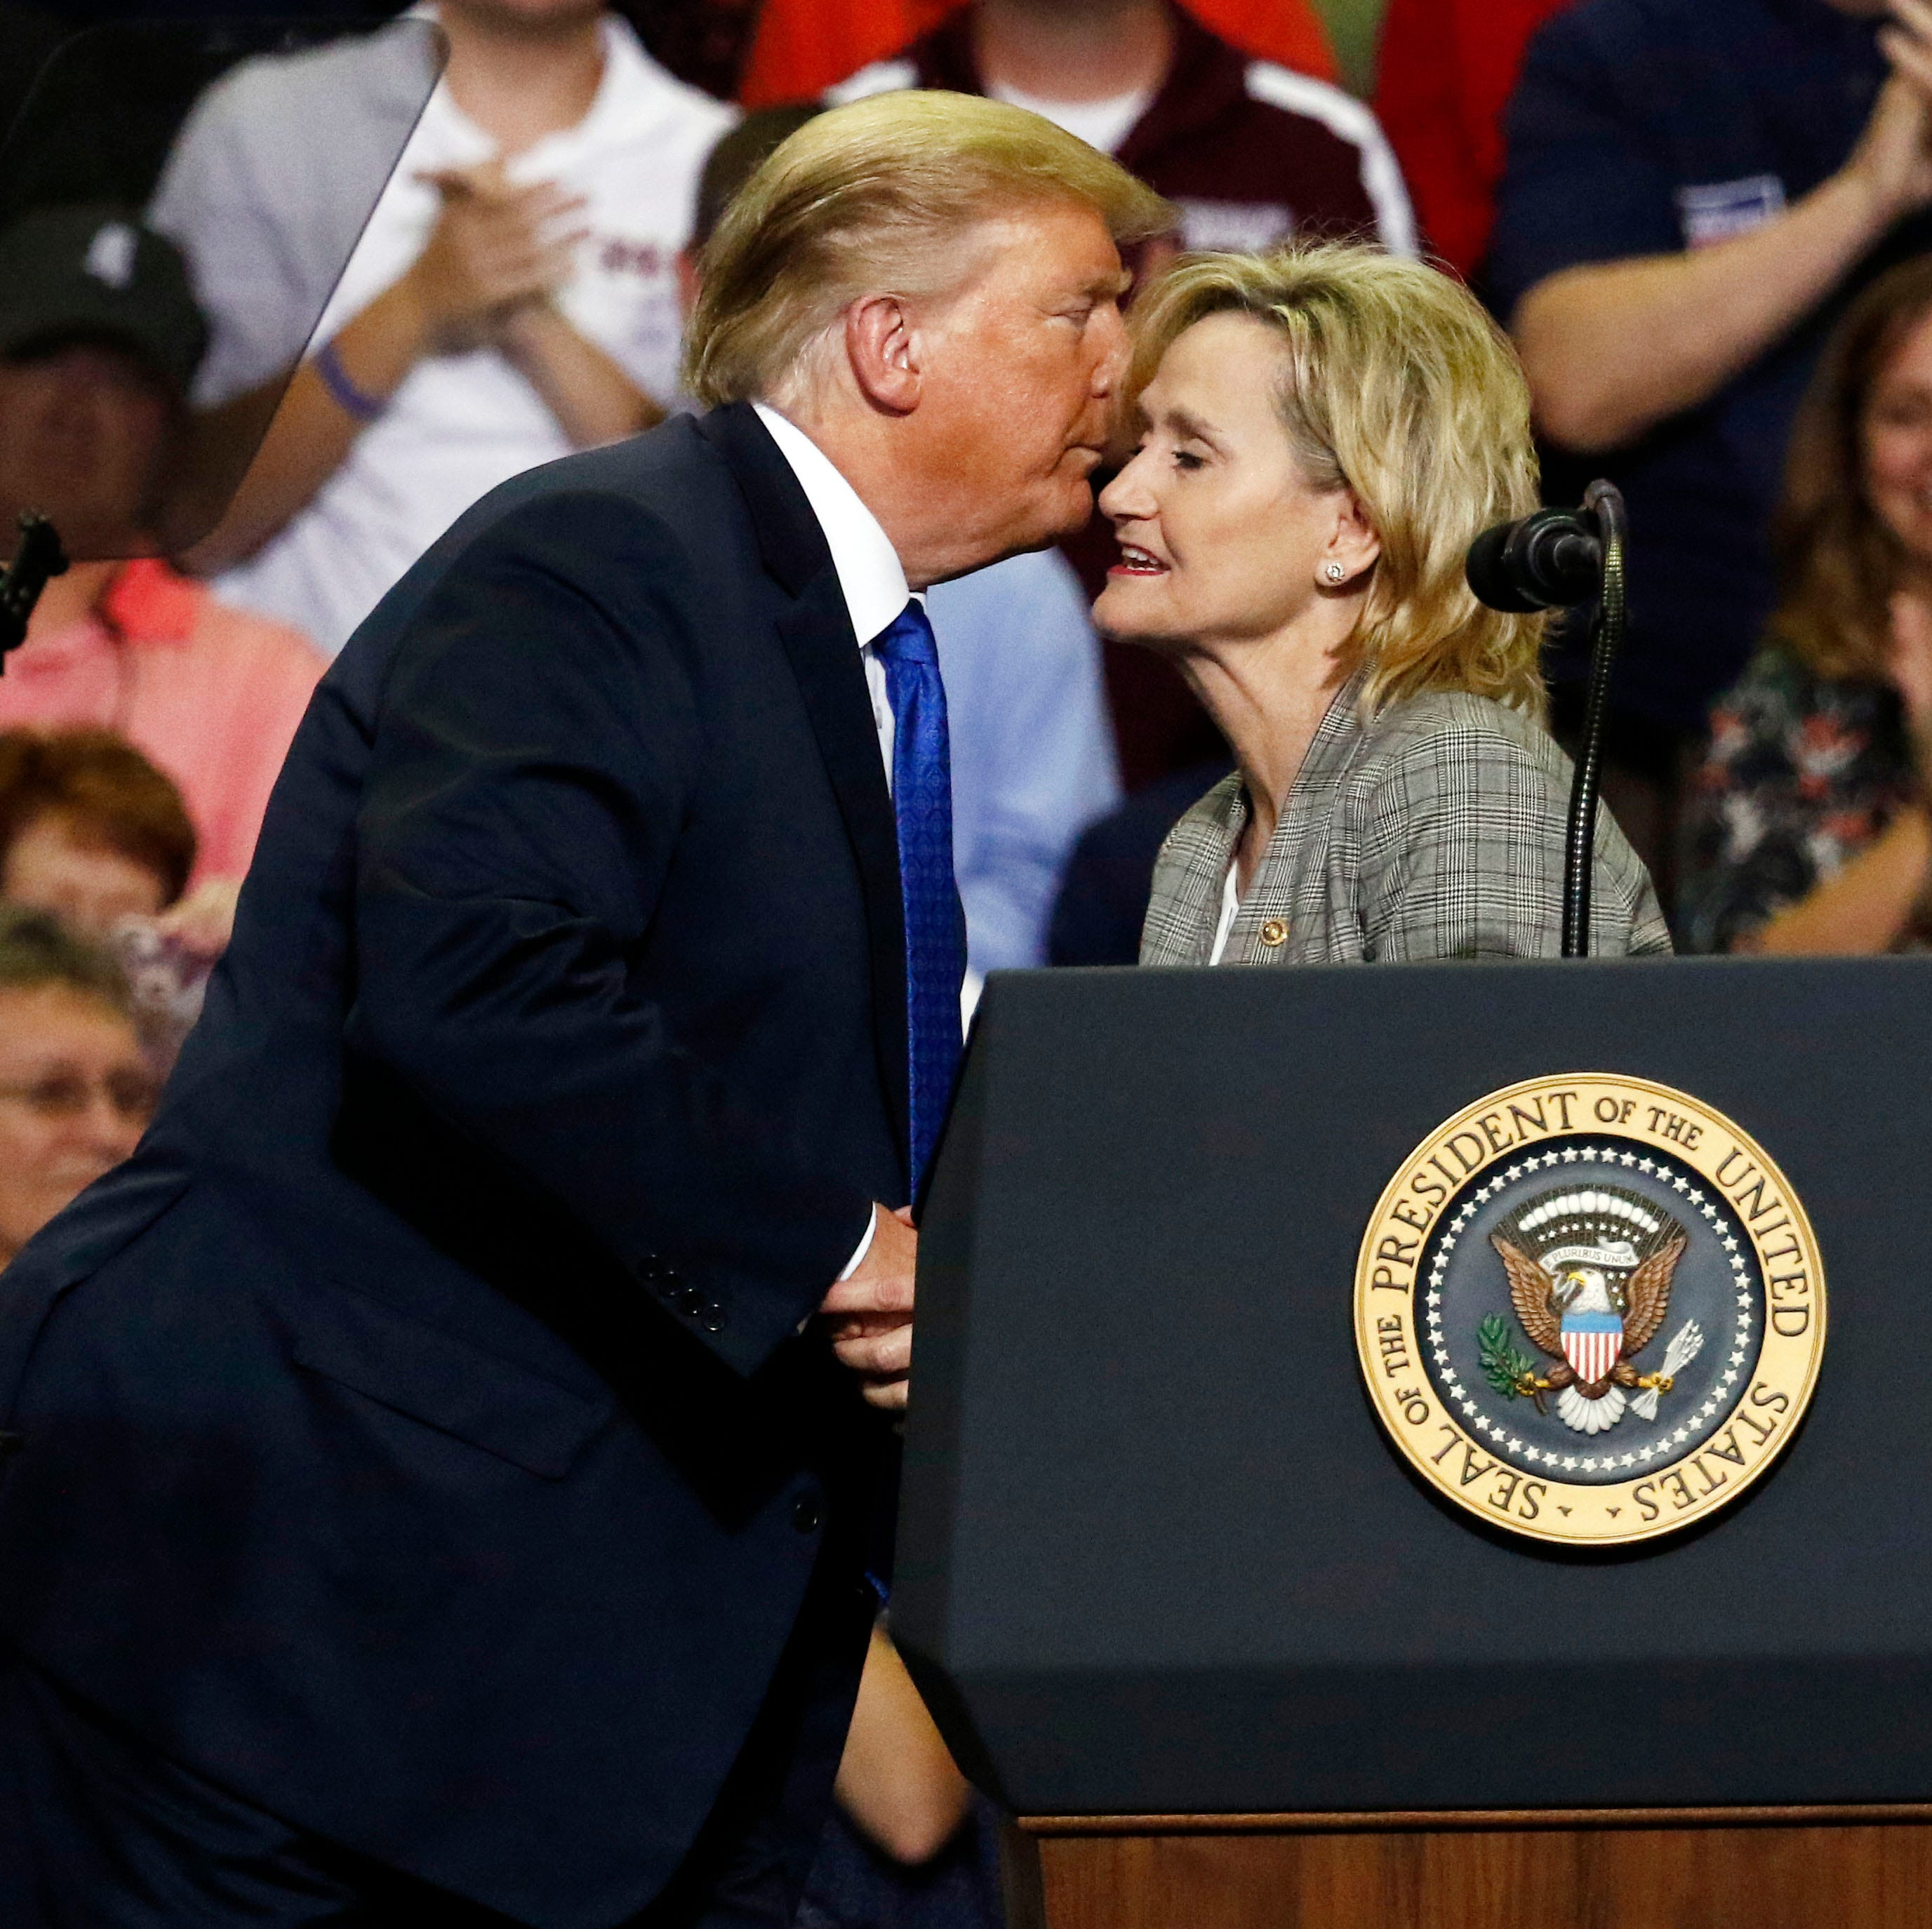 President Donald Trump kisses Sen. Cindy Hyde-Smith, R-Miss., after introducing her at a rally Tuesday, Oct. 2, 2018, in Southaven, Miss.  (AP Photo/Rogelio V. Solis)